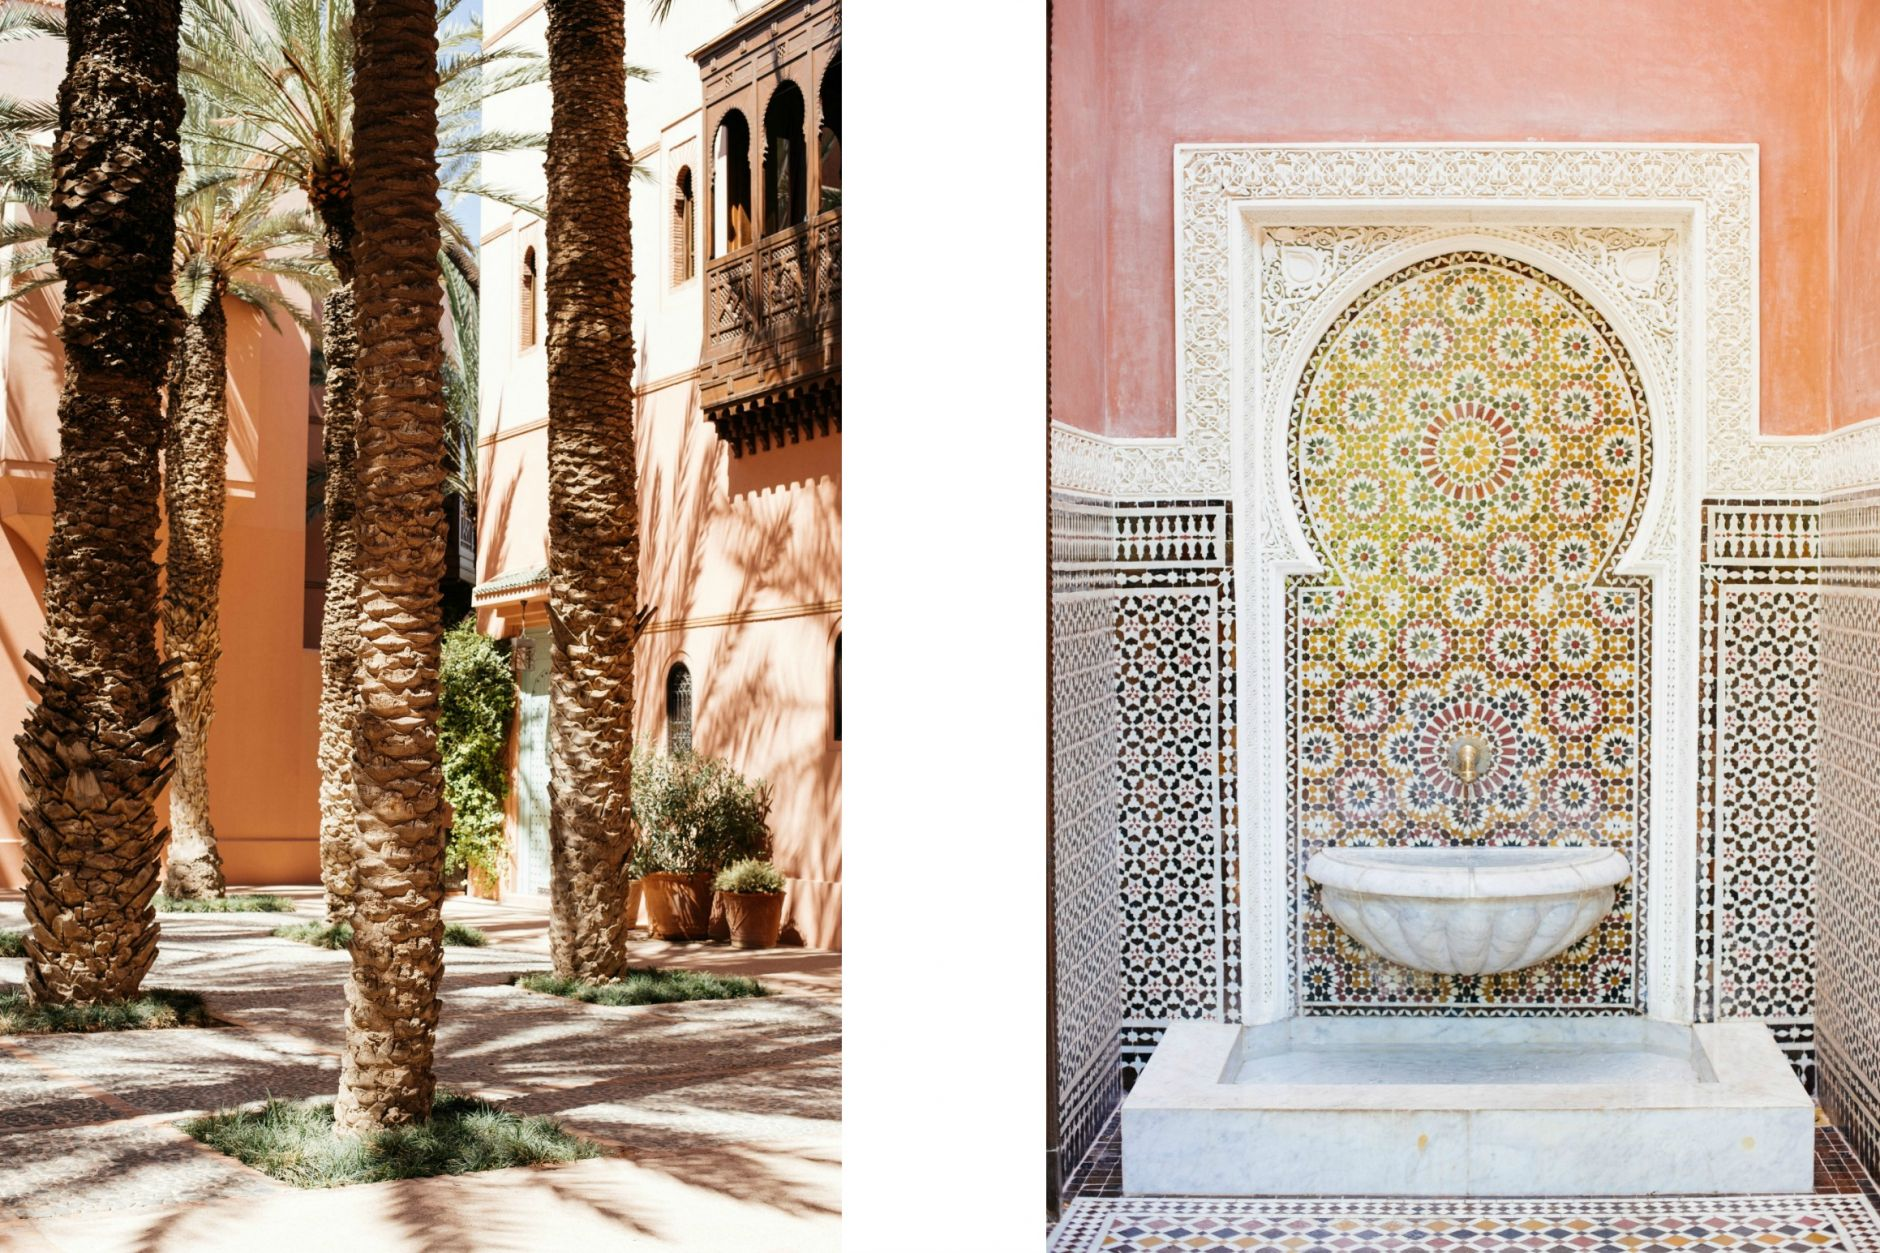 royal-mansour-hotel-luxury-marrakesch-marrakesh-morocco-edisa-shahini-disicouture-blog-duo-15